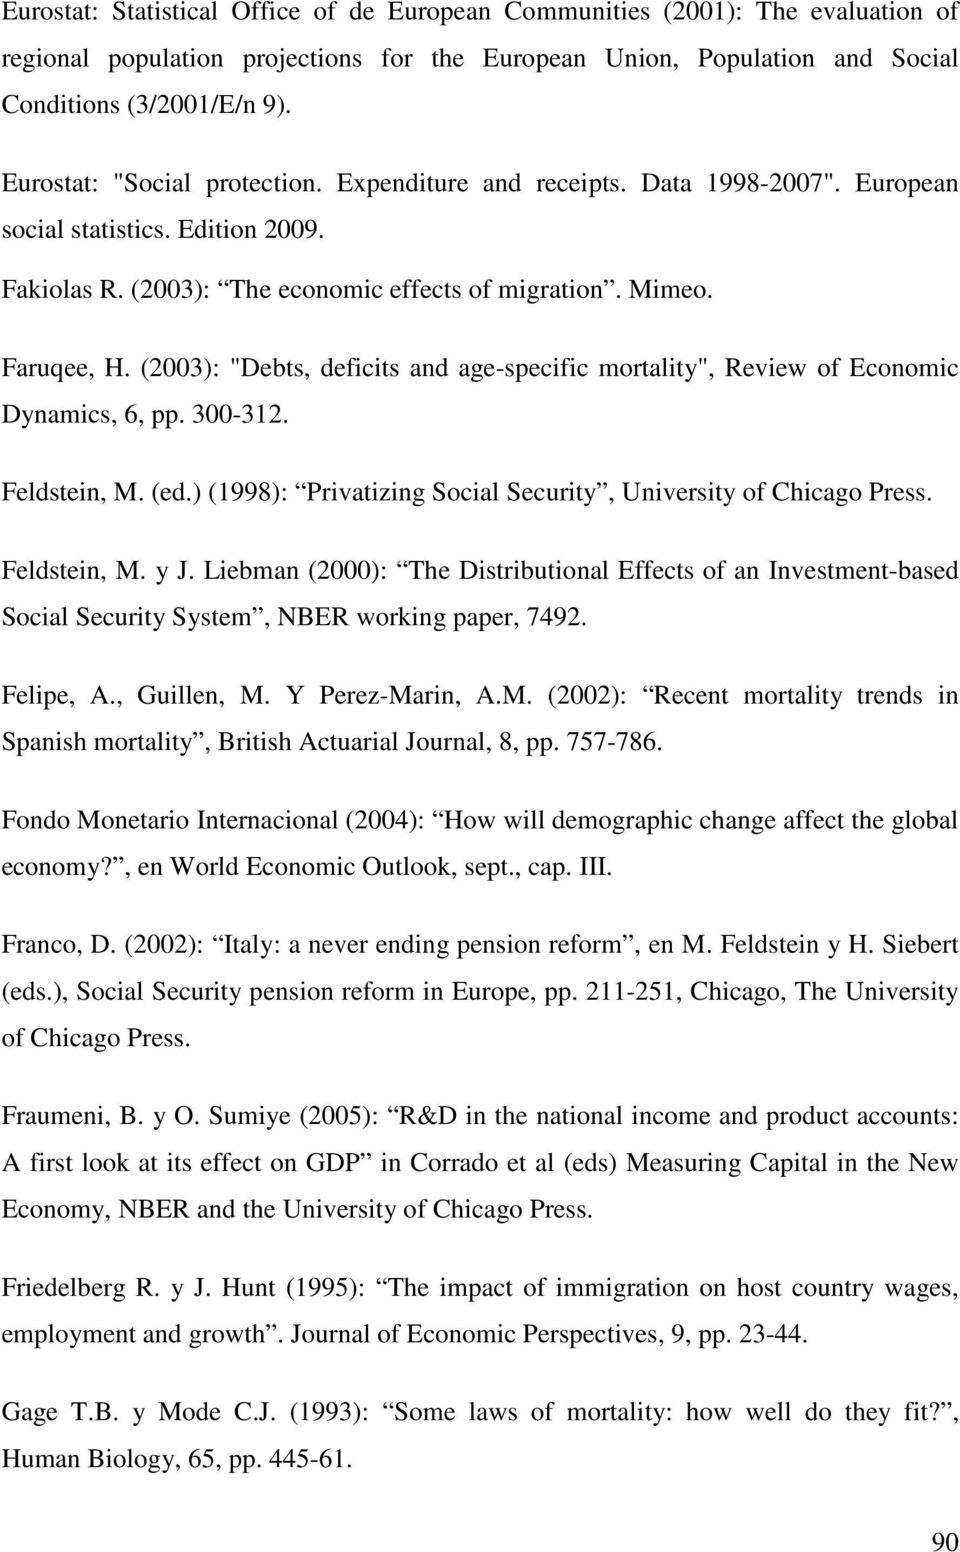 "(2003): ""Debts, deficits and age-specific mortality"", Review of Economic Dynamics, 6, pp. 300-312. Feldstein, M. (ed.) (1998): Privatizing Social Security, University of Chicago Press. Feldstein, M. y J."